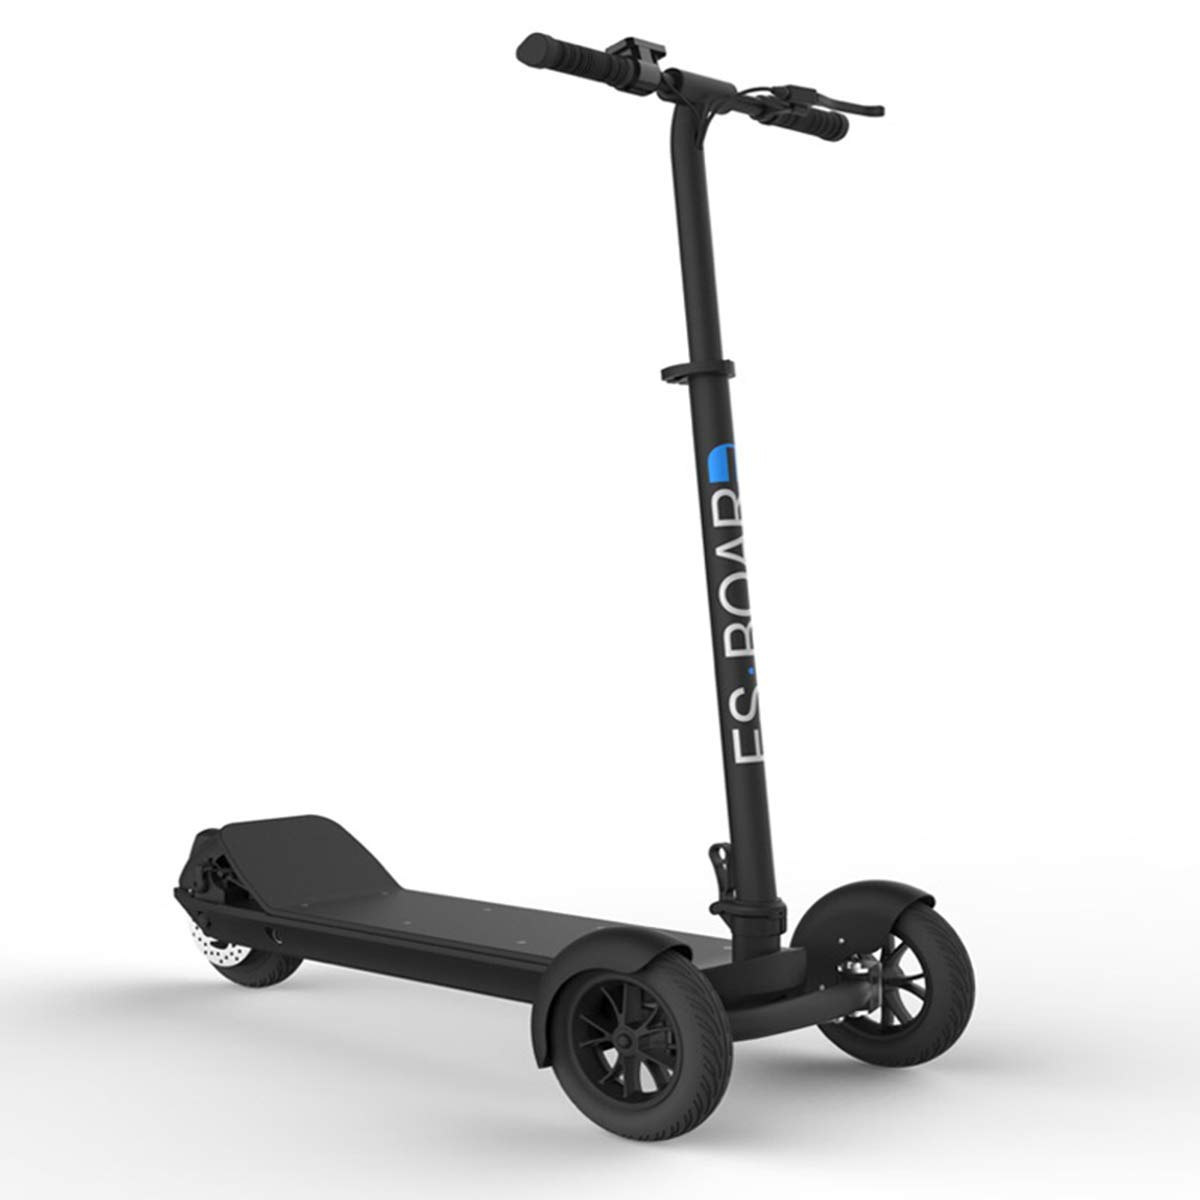 Dapang Scooter for Adults 3 Wheel T-bar Adjustable Height Handle Kick Scooters,500W 48V Waterproof E-Bike with 30 Mile Range, Collapsible Frame,20km